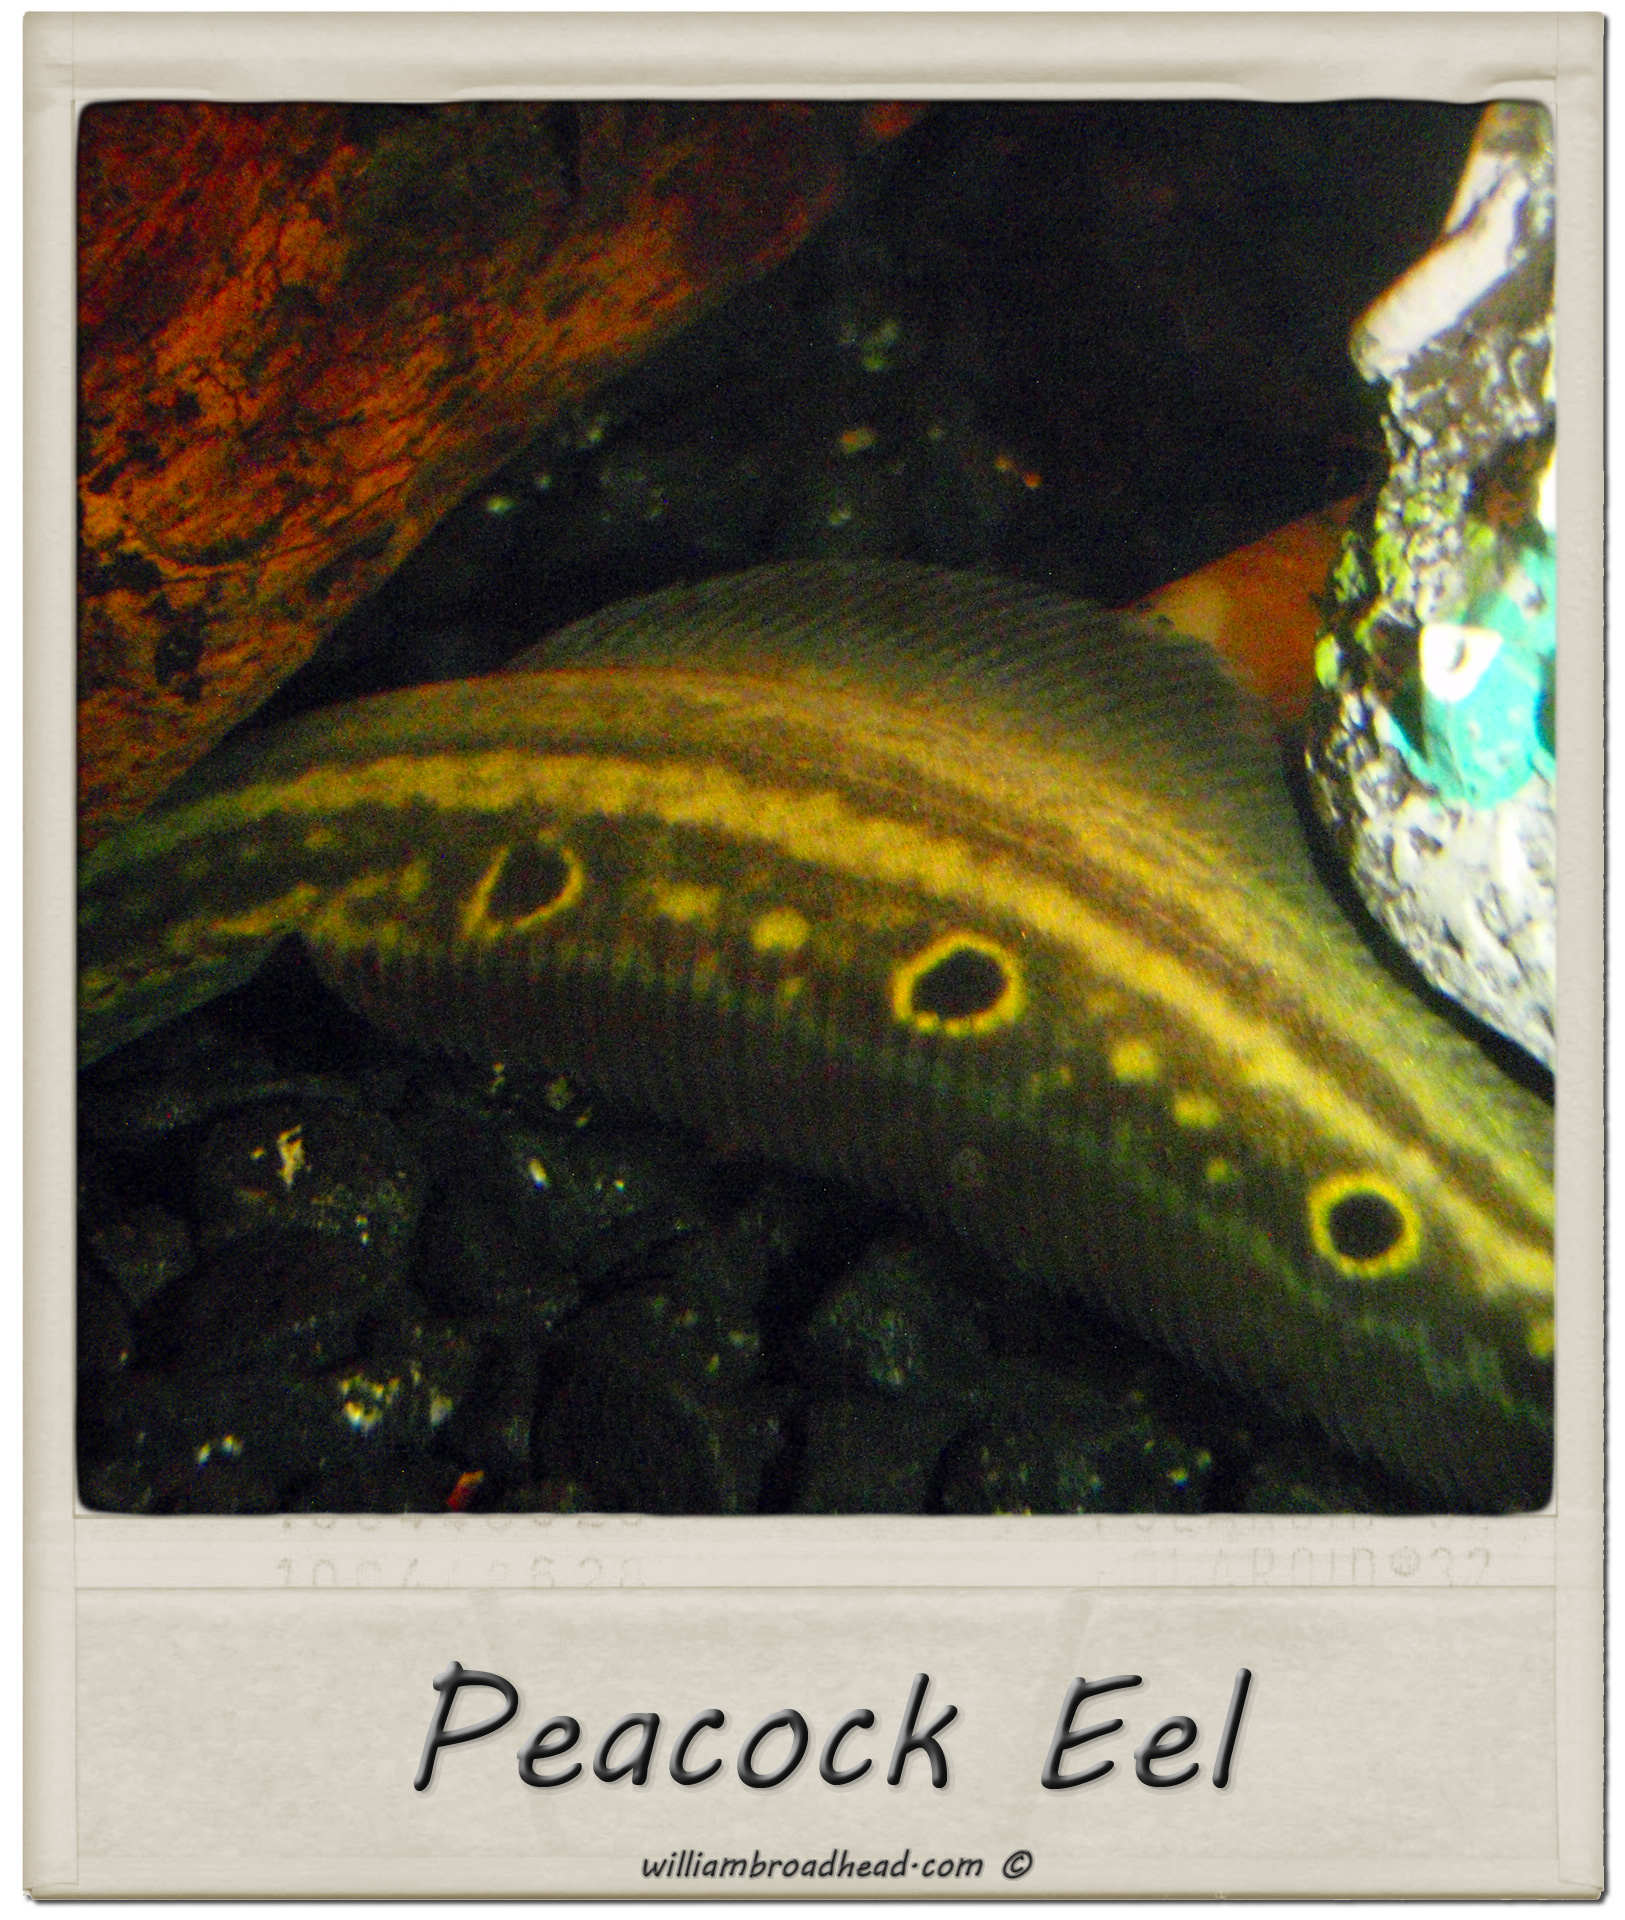 Peacock eel william broadhead for Eel fish tank